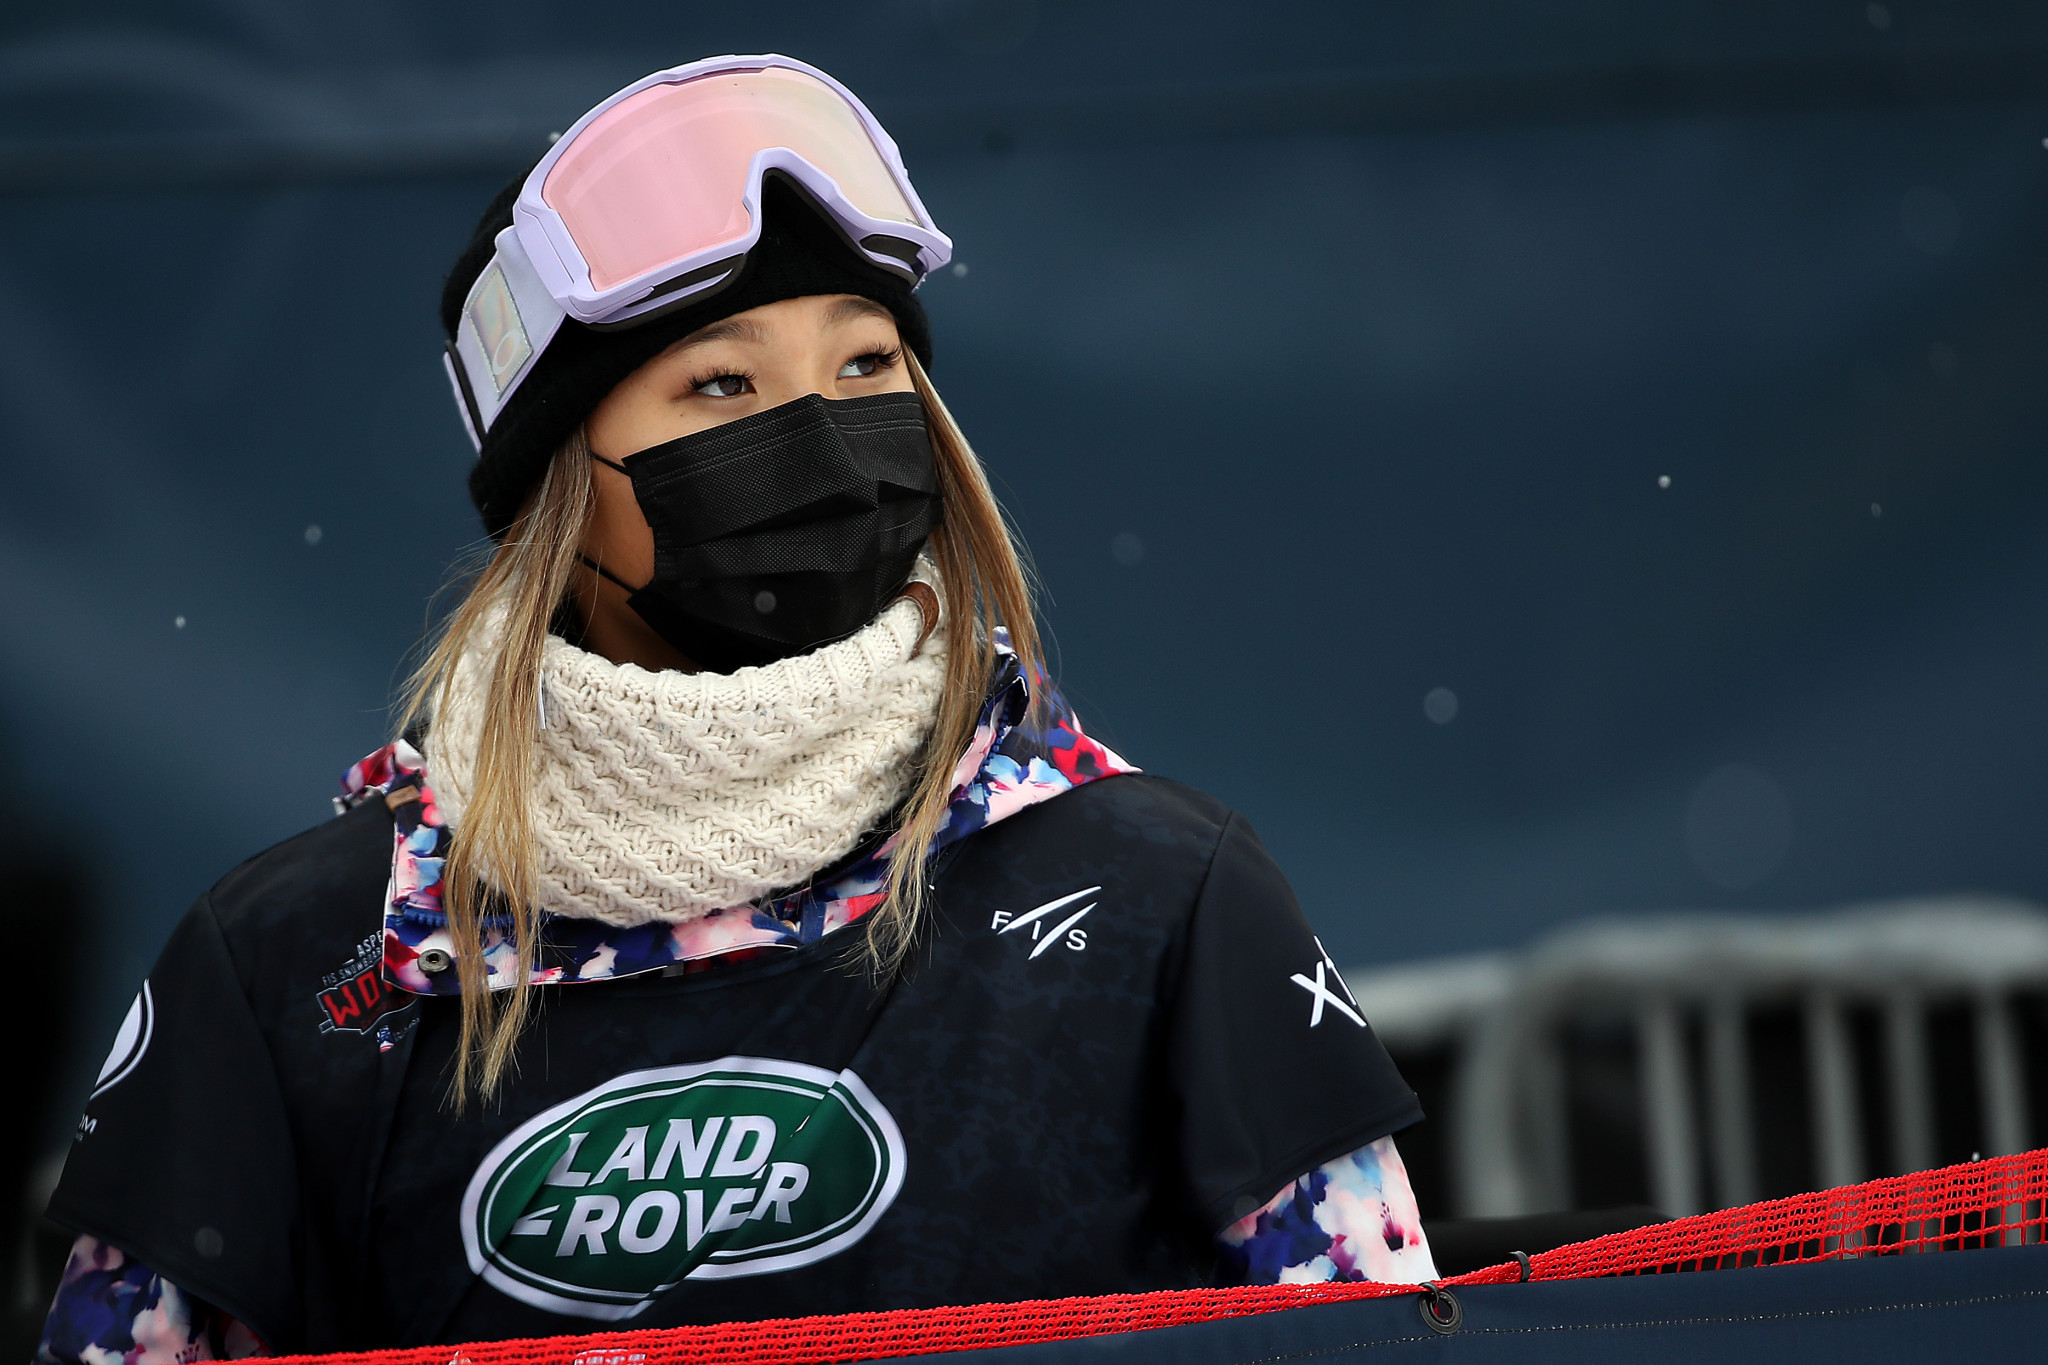 Kim tops halfpipe qualification standings at FIS Snowboard World Cup